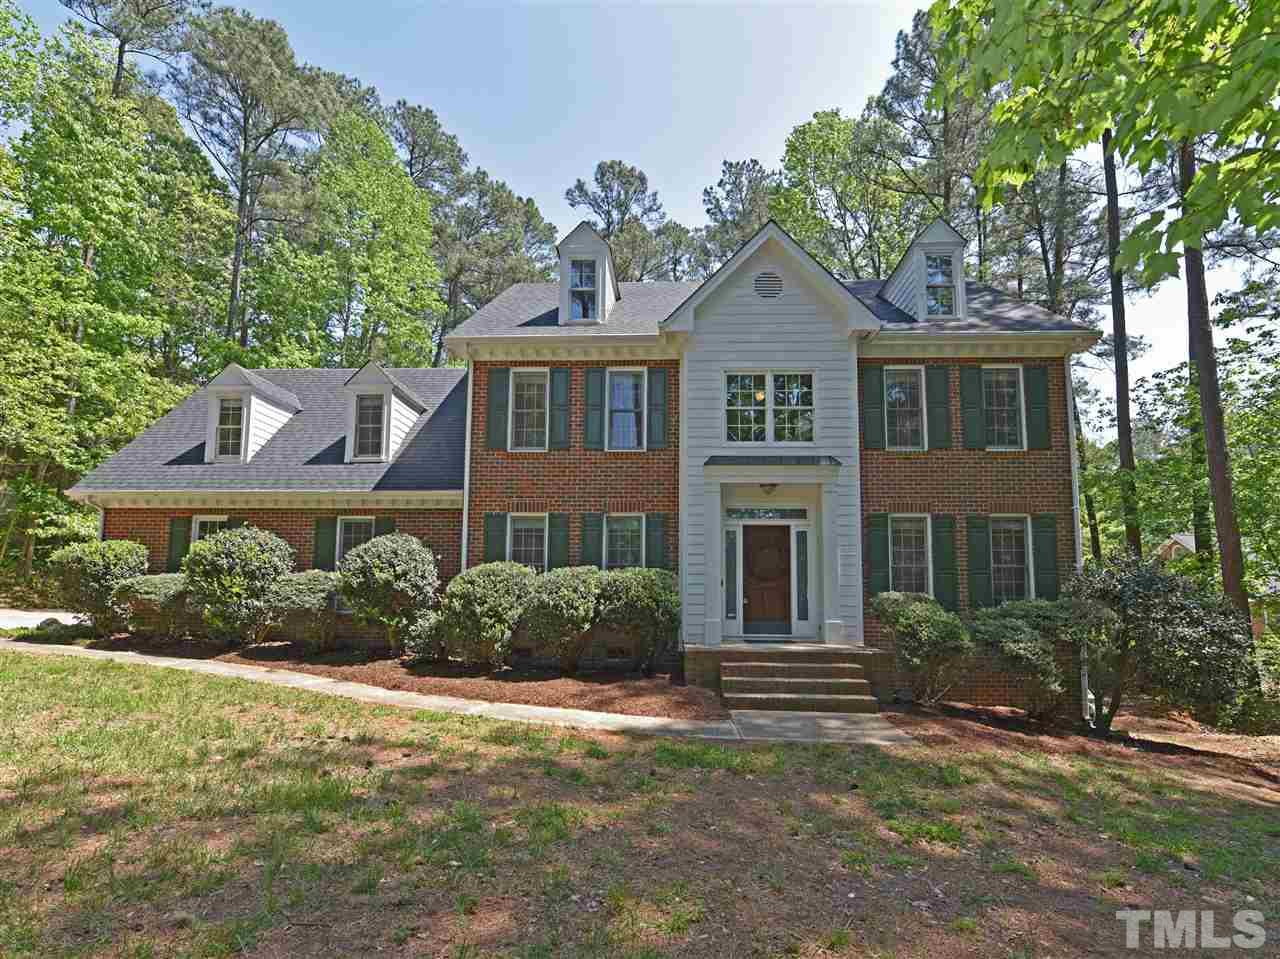 5509 PINE LEAF COURT, RALEIGH, NC 27606